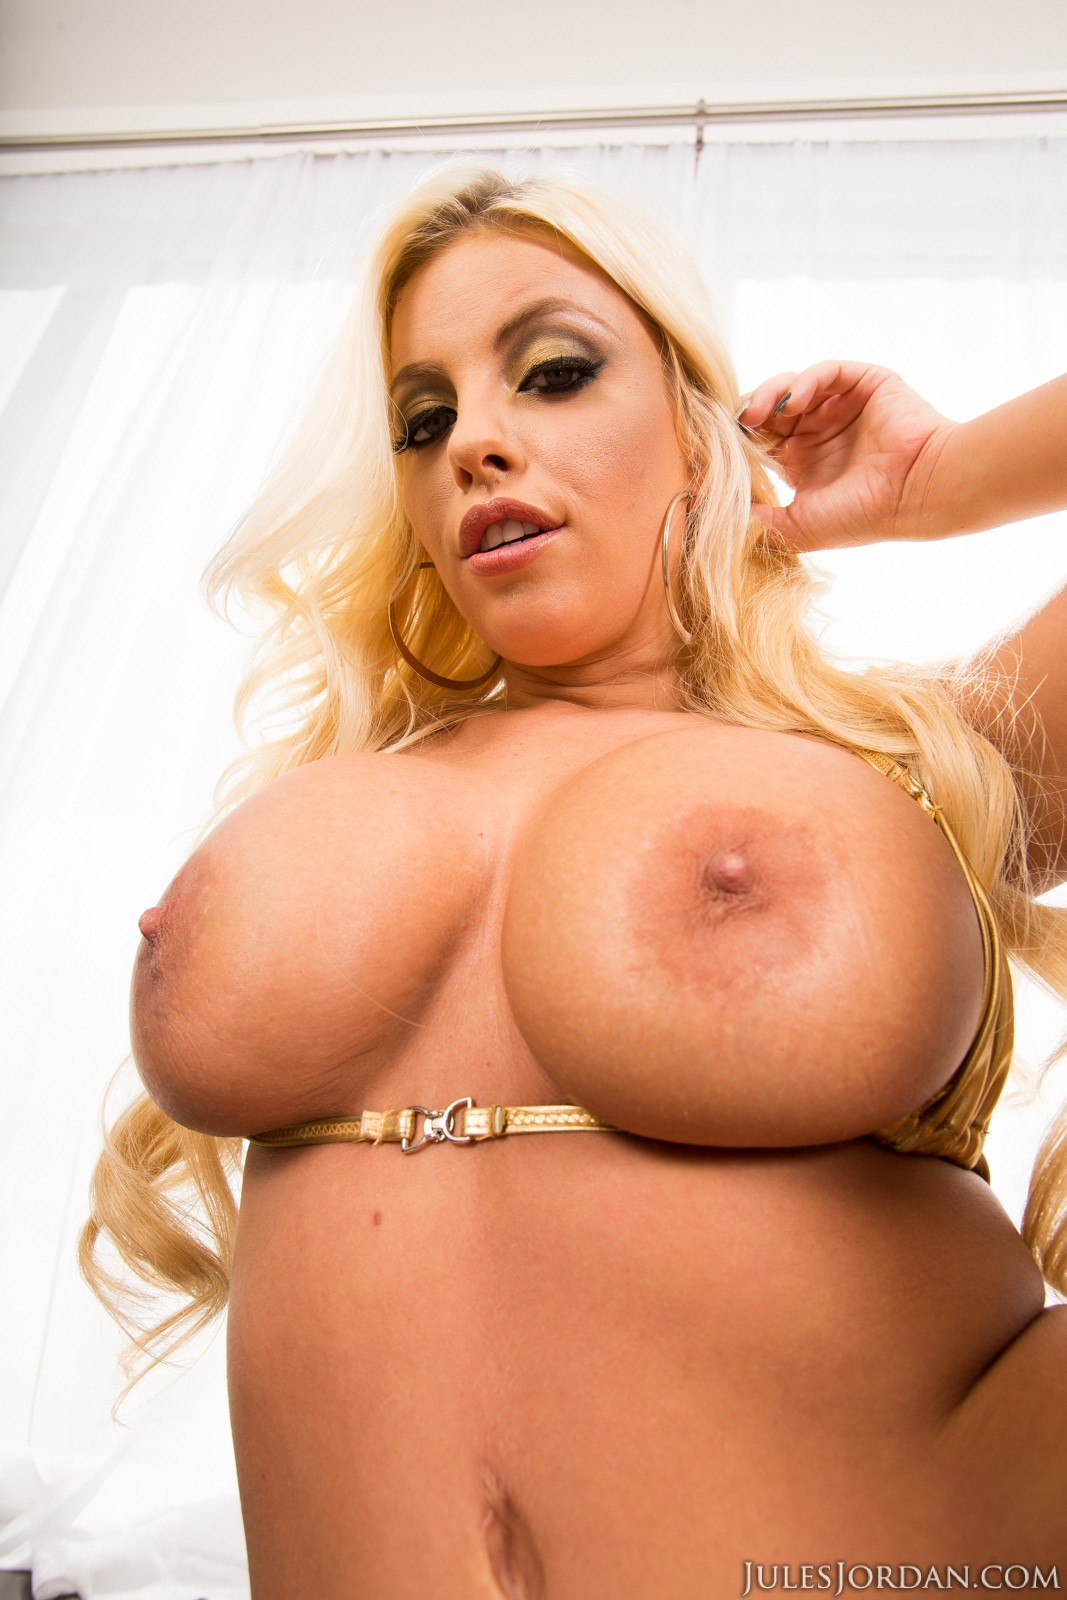 Sorry, that Britney amber tits necessary